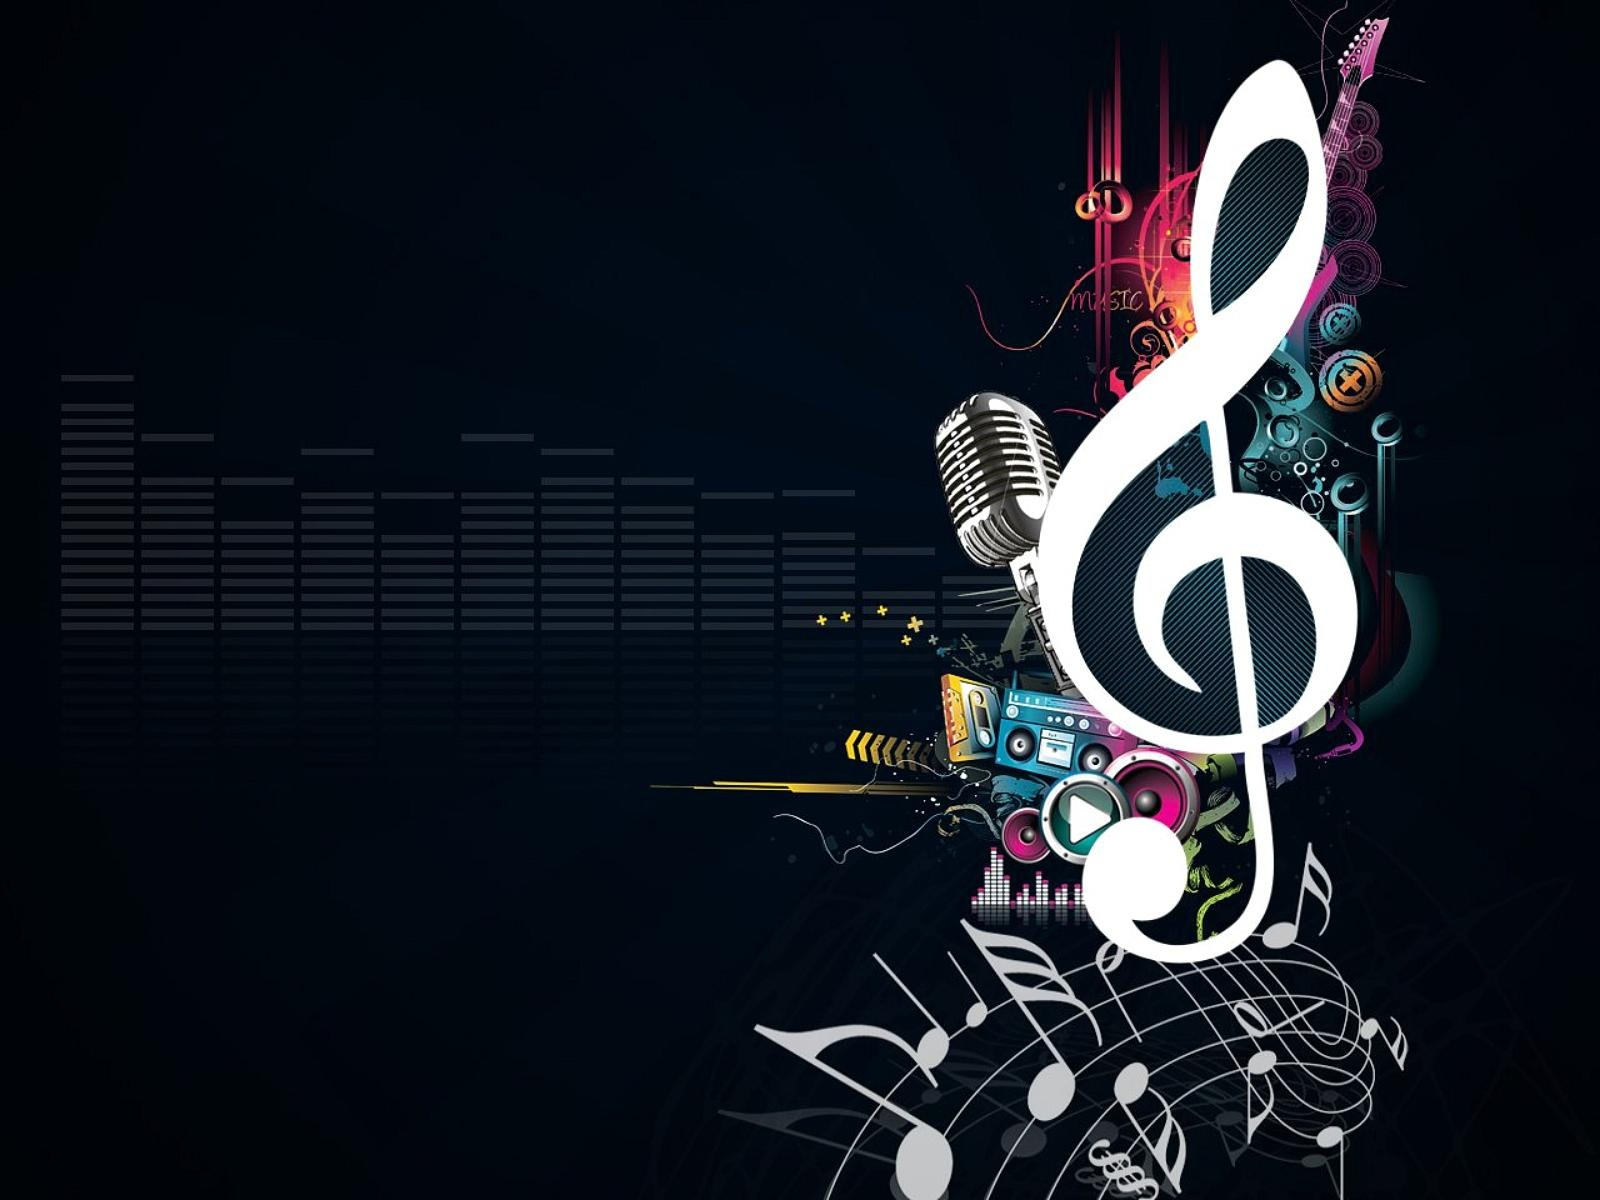 Hd Wallpapers Music Microphone Kb Jpeg